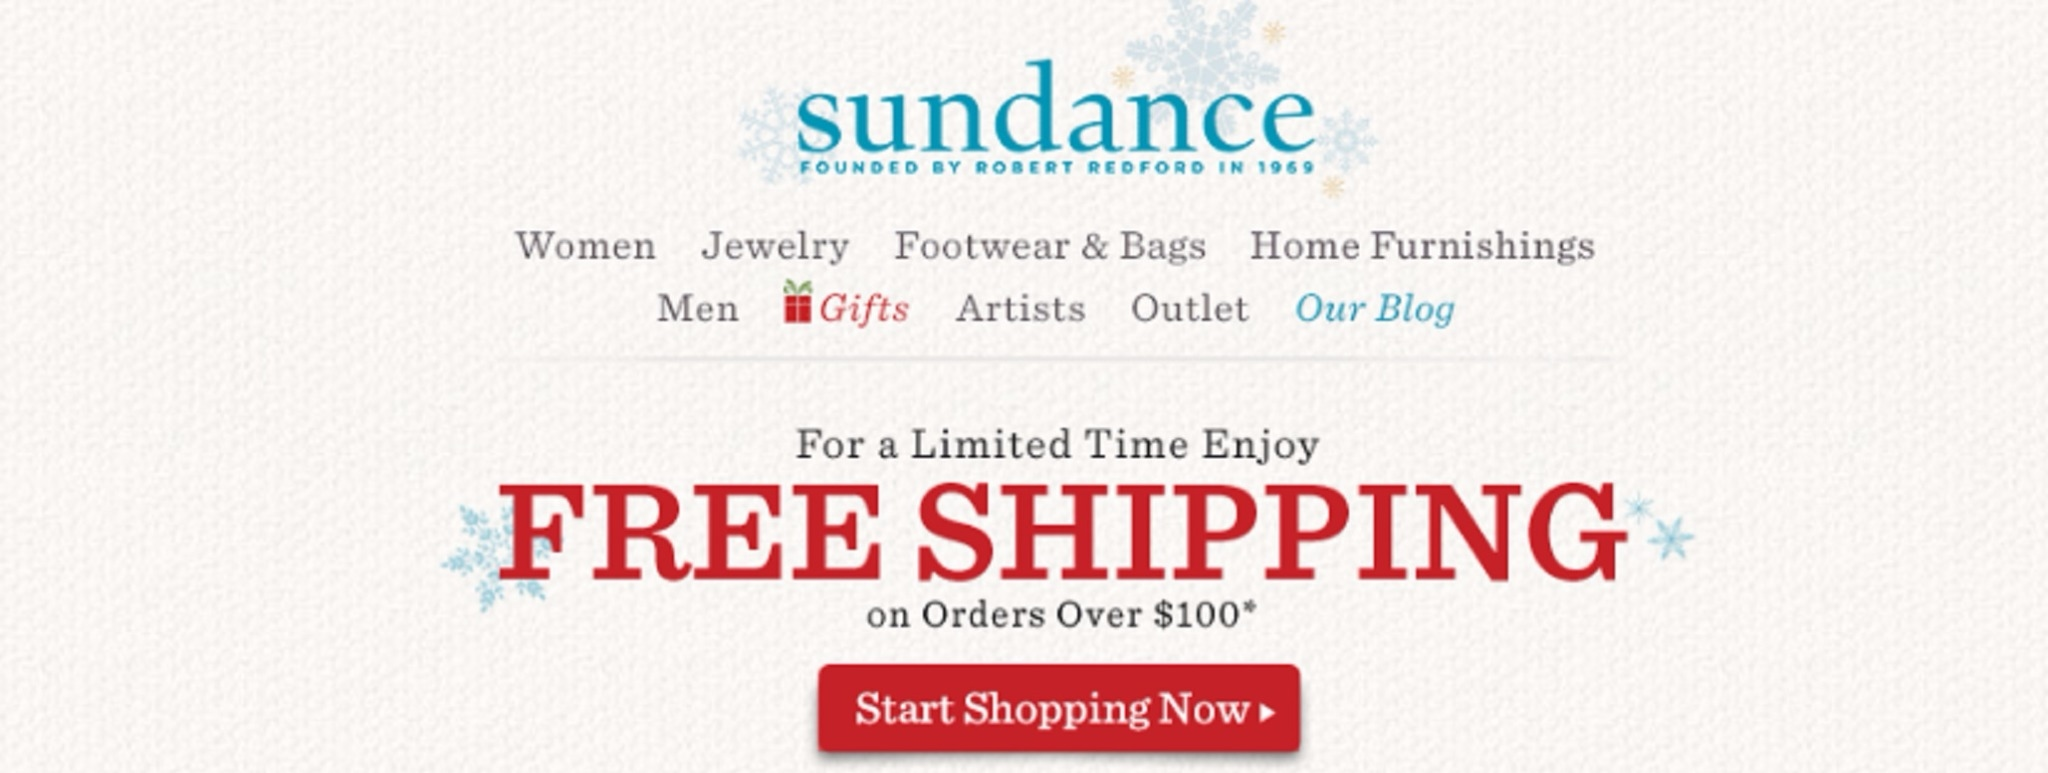 Sundance Catalog Coupons Discounts